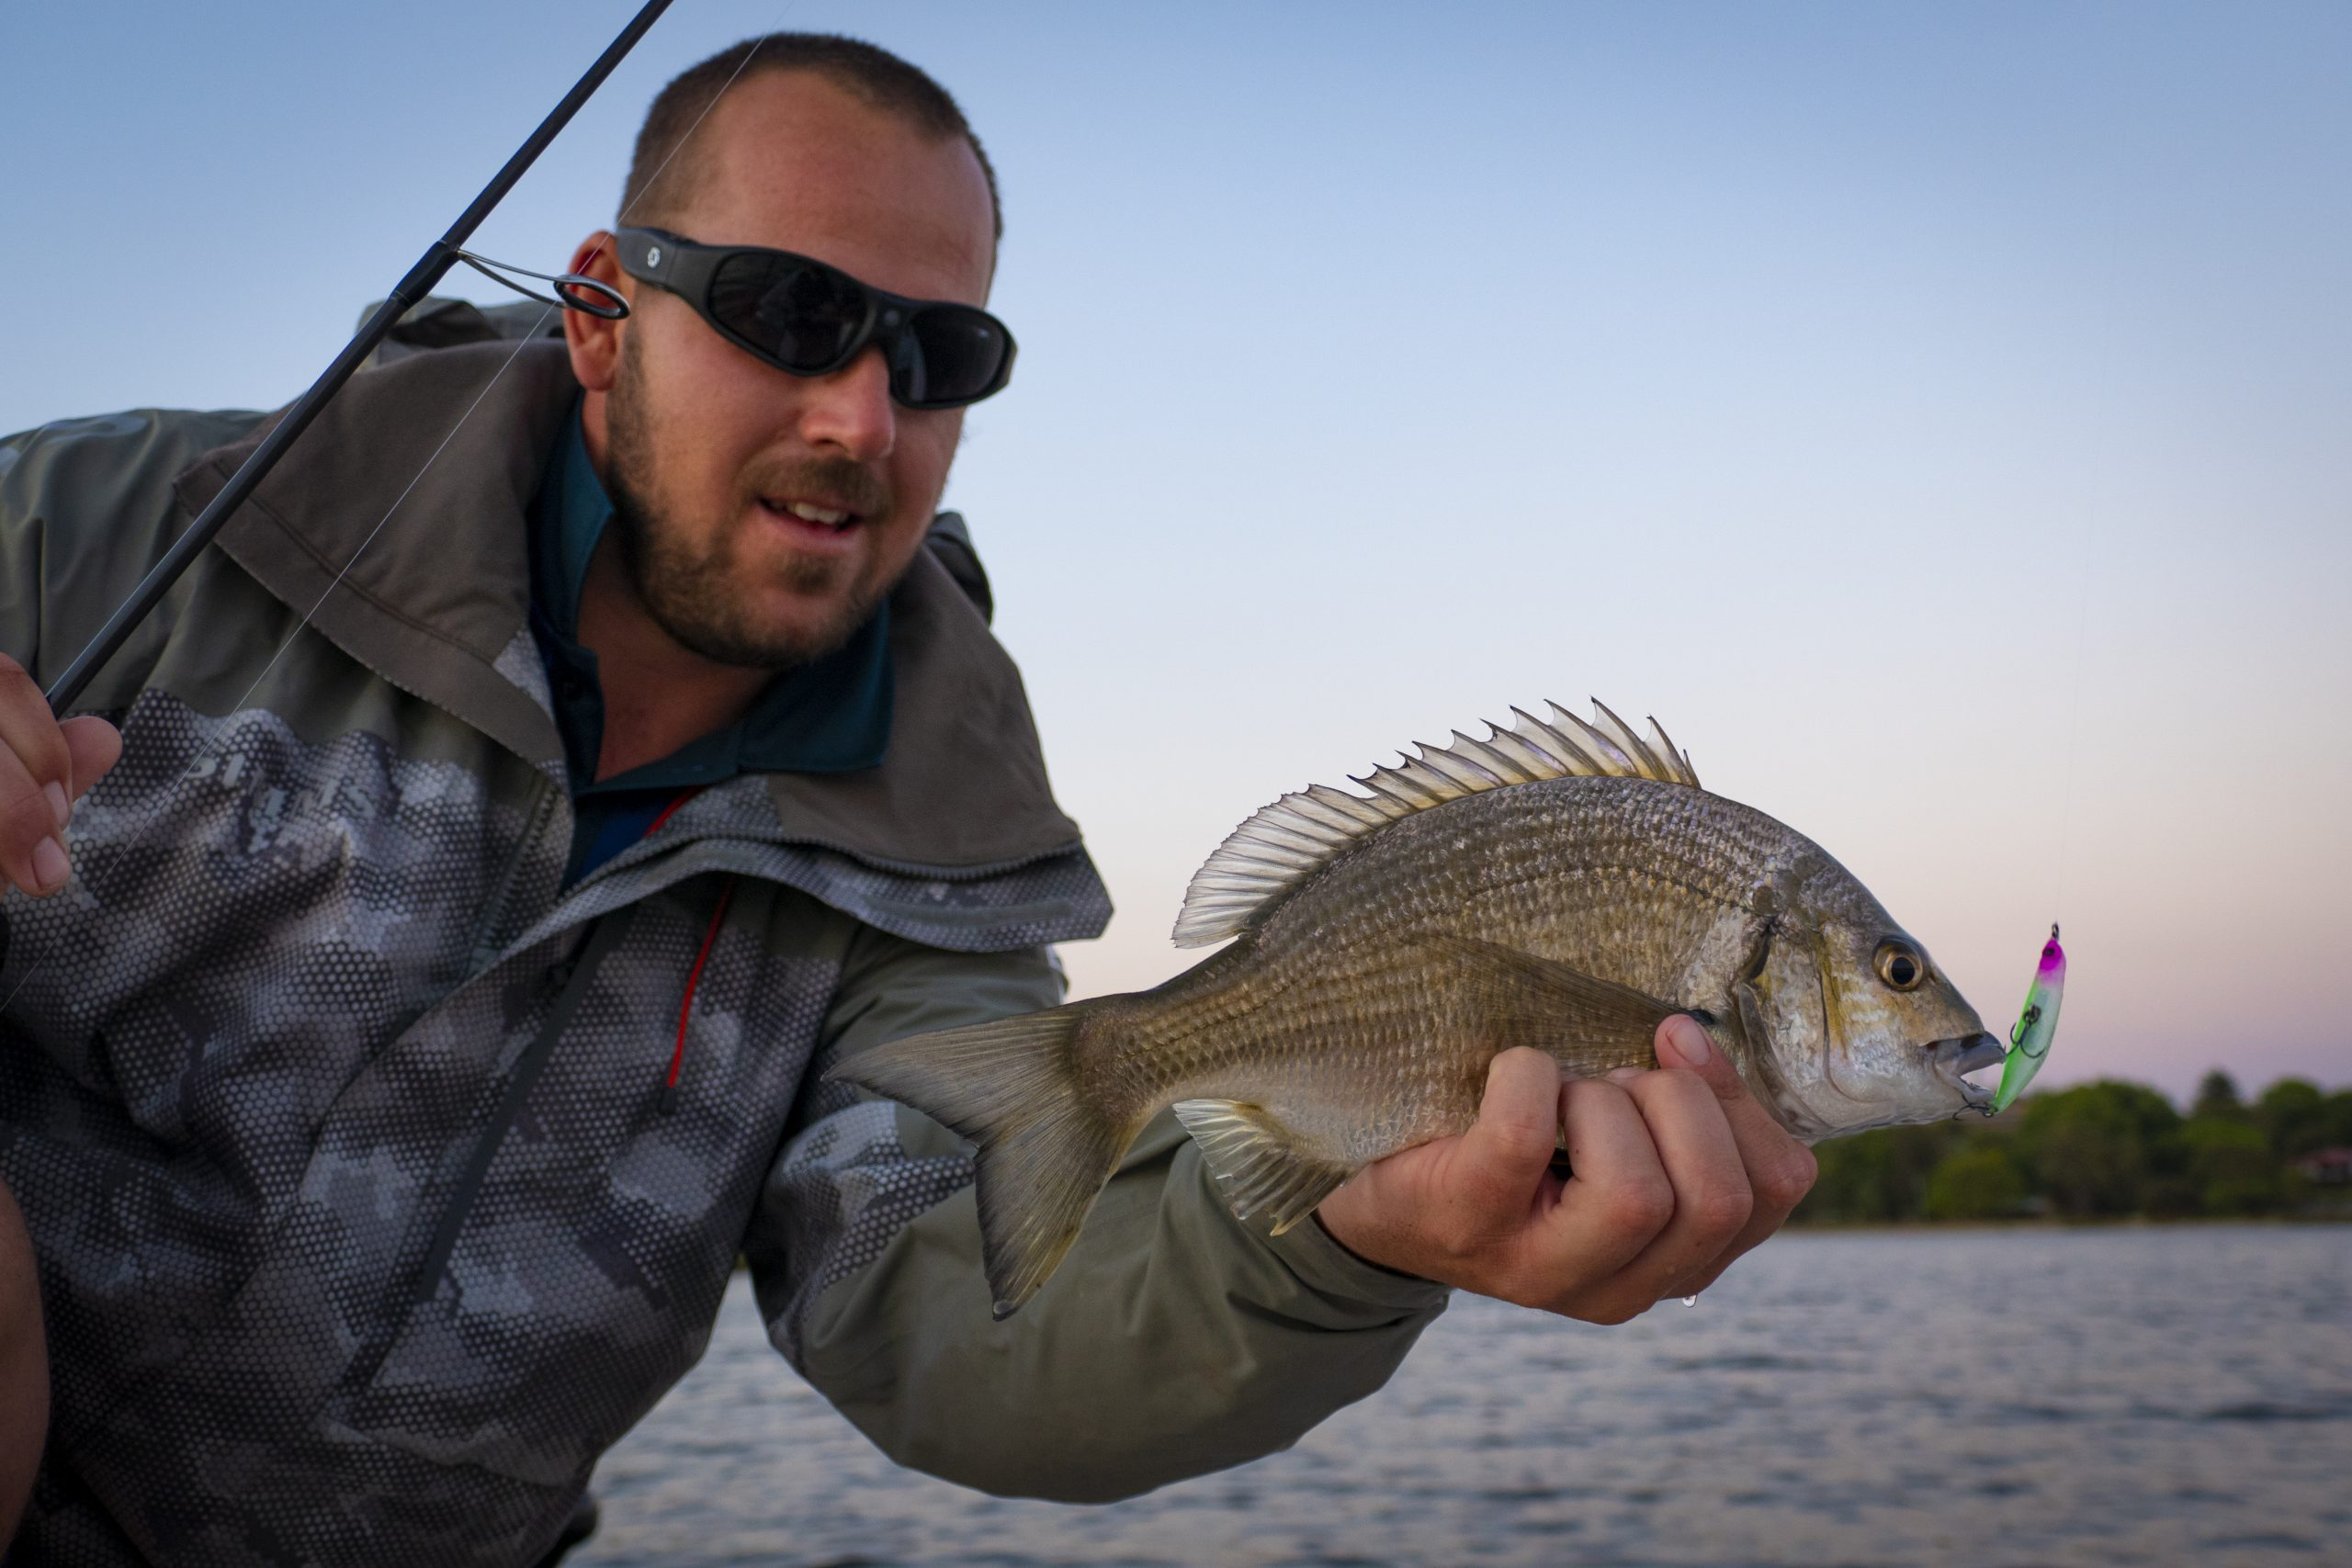 Ruan Ven Der Berg with a Swan River Bream